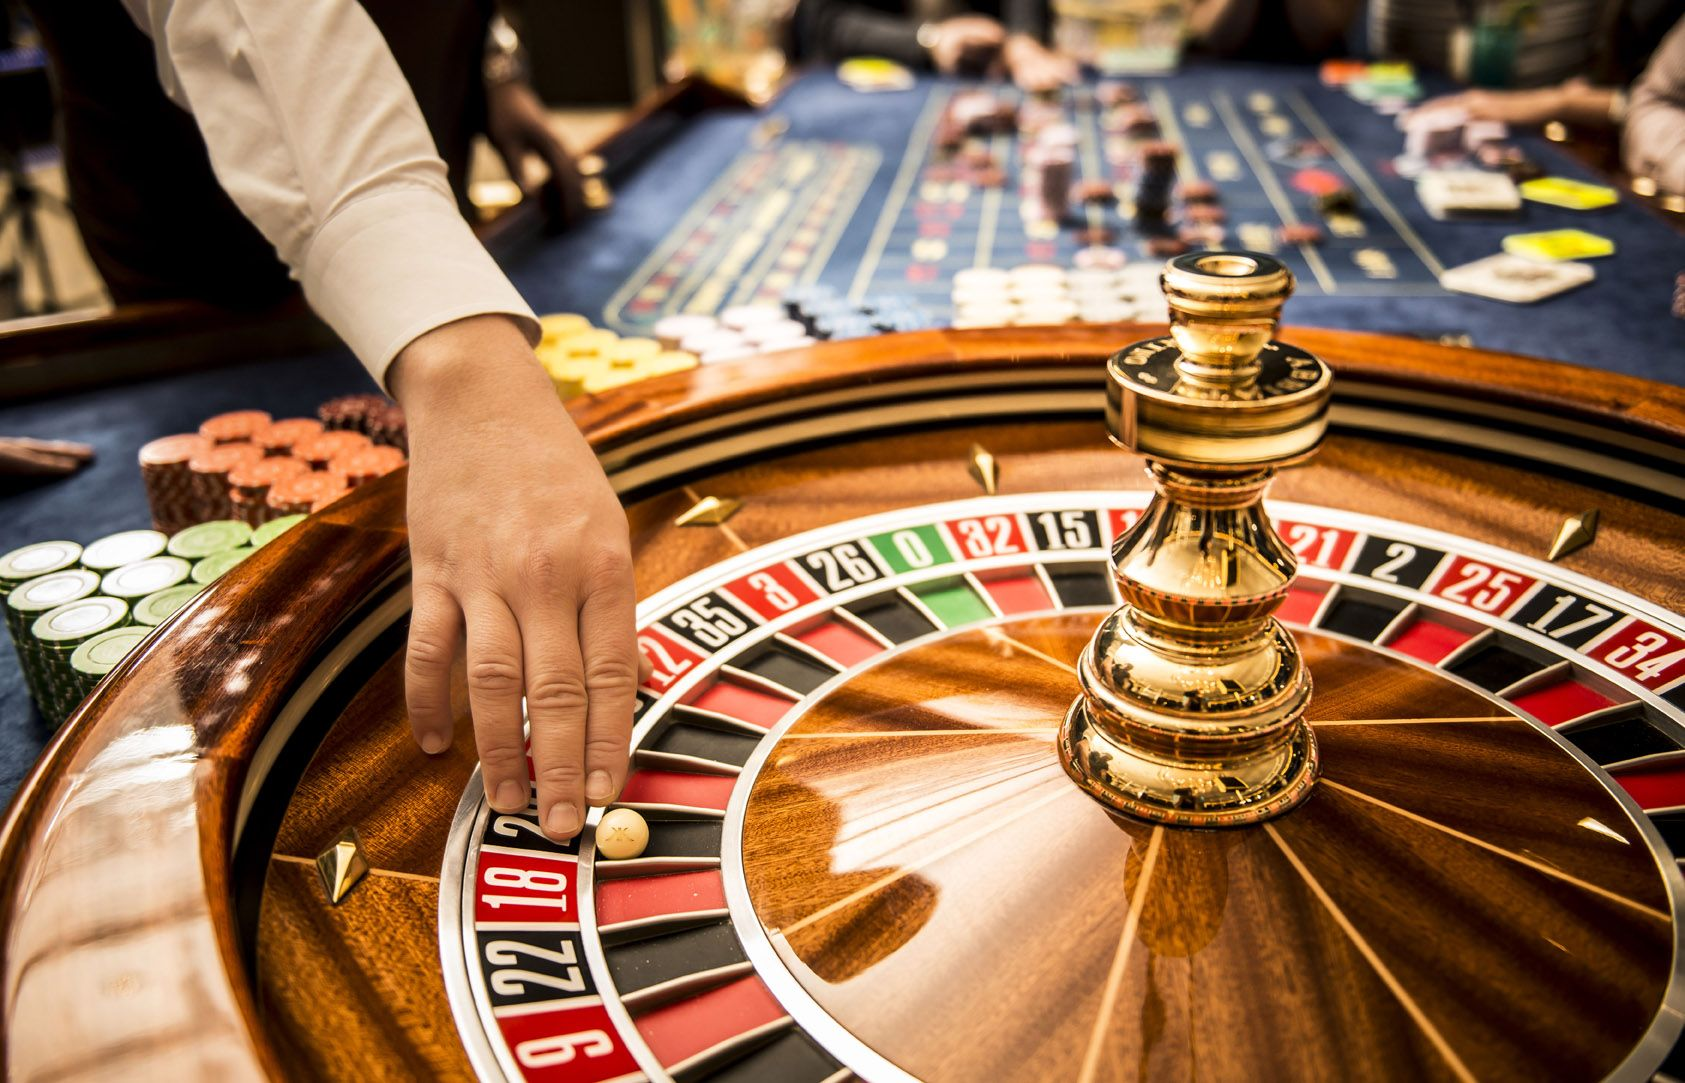 Live roulette - play online roulette with a live dealer UK! | Gambling  gift, Roulette, Casino